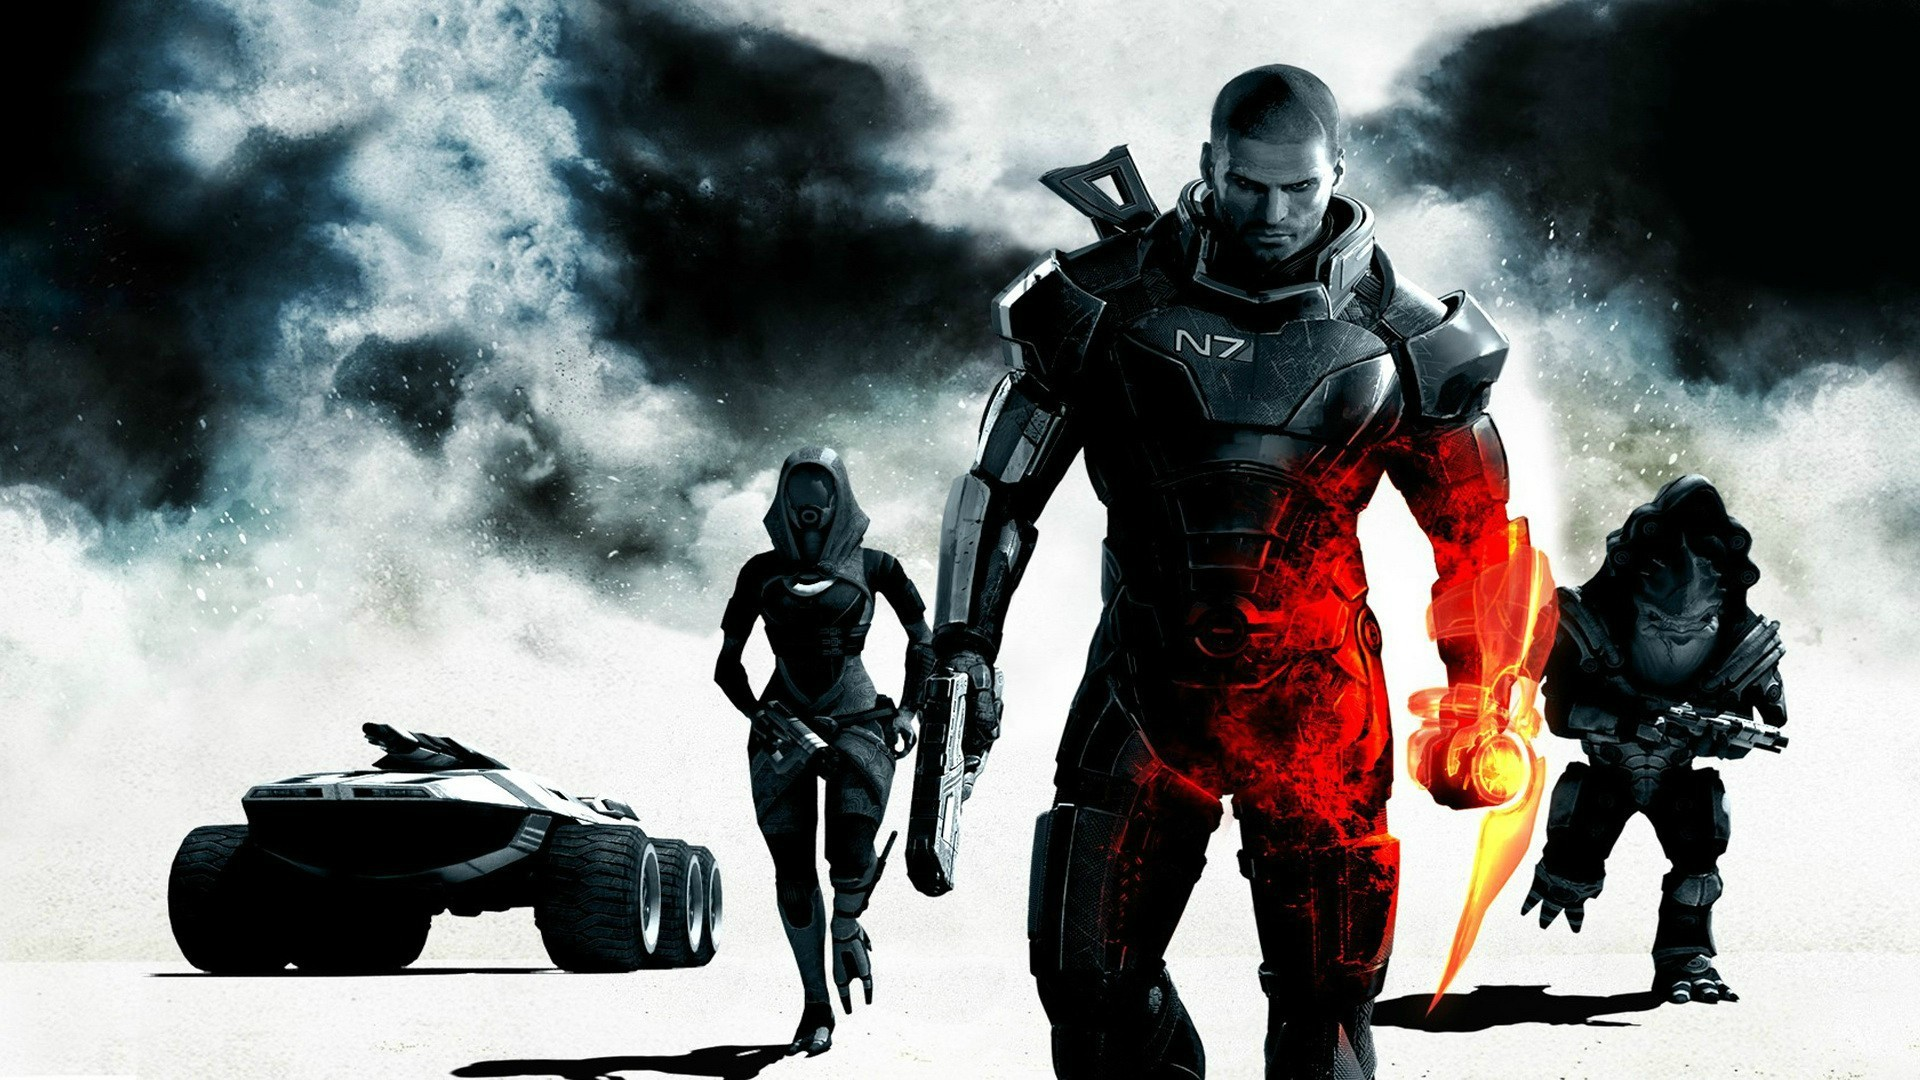 Mass Effect 3 and Battlefield 3 mashup. Two awesome games in a single  wallpaper.